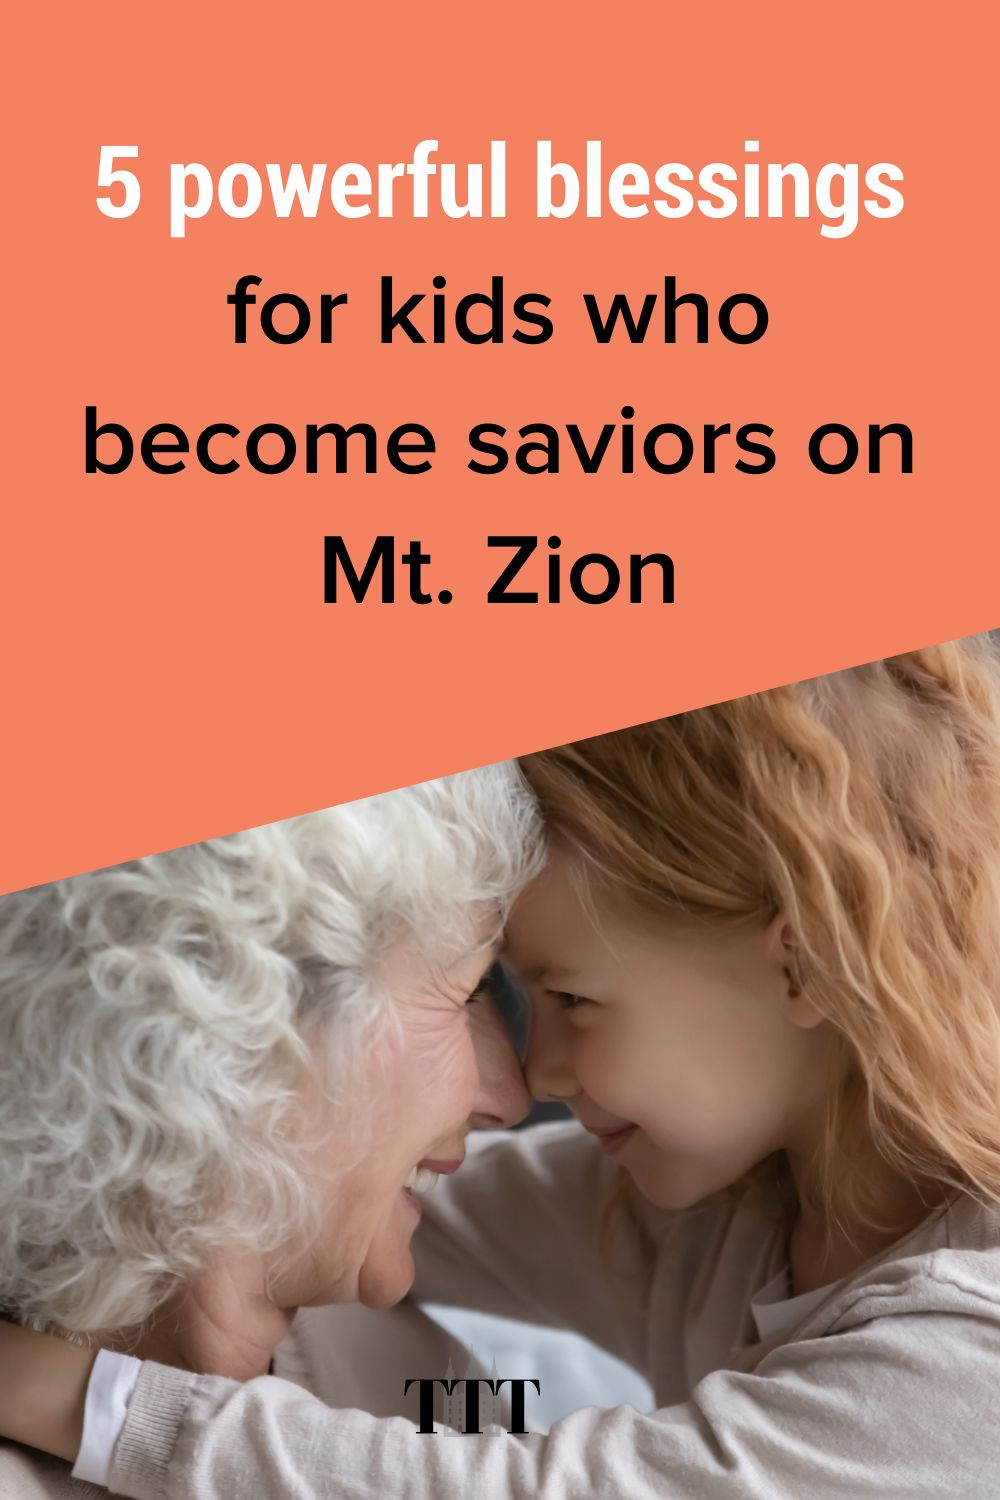 5 powerful blessings for kids who become saviors on Mt. Zion